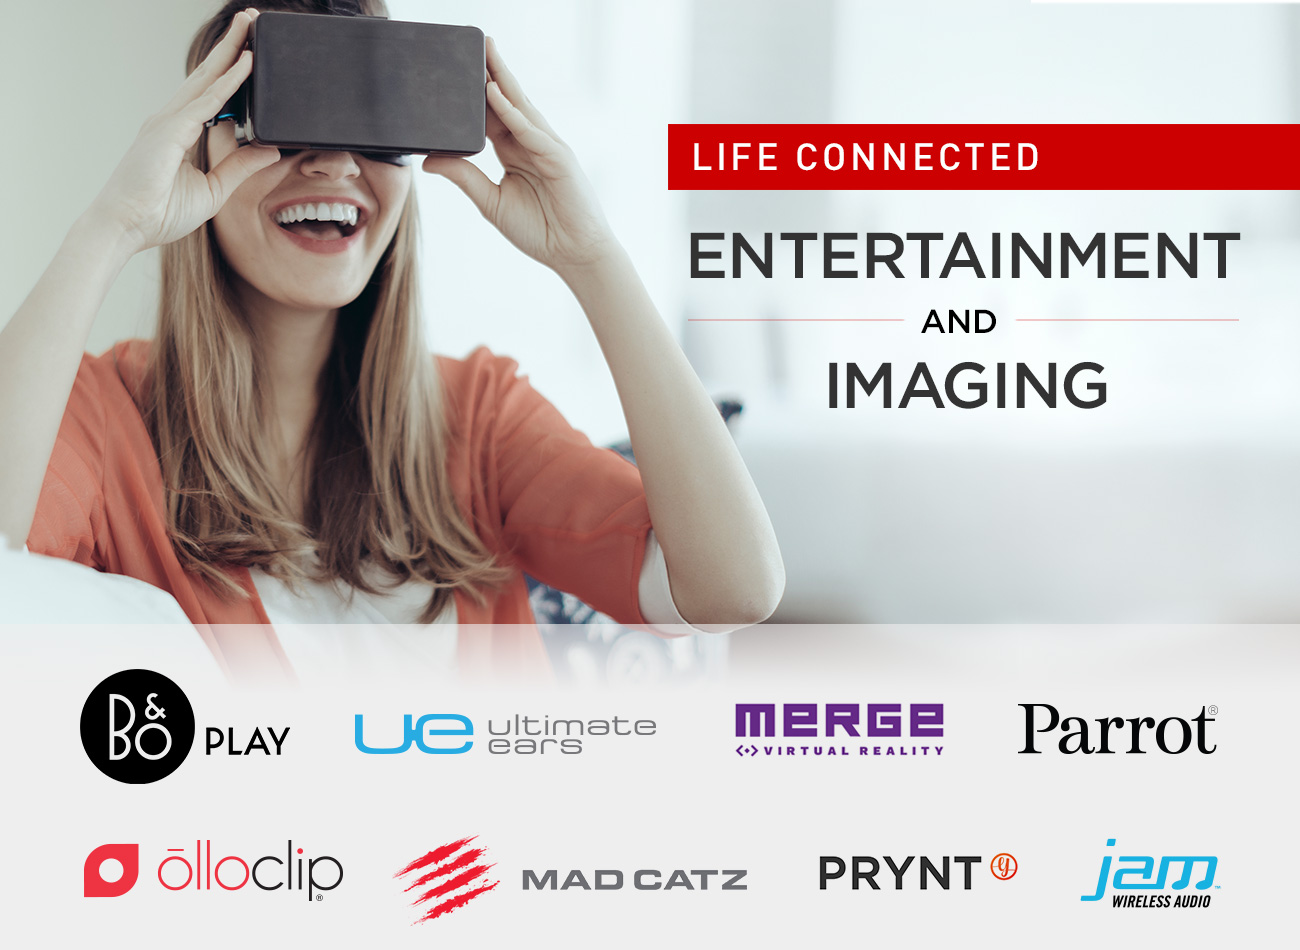 Life Connected: Entertainment and Imaging